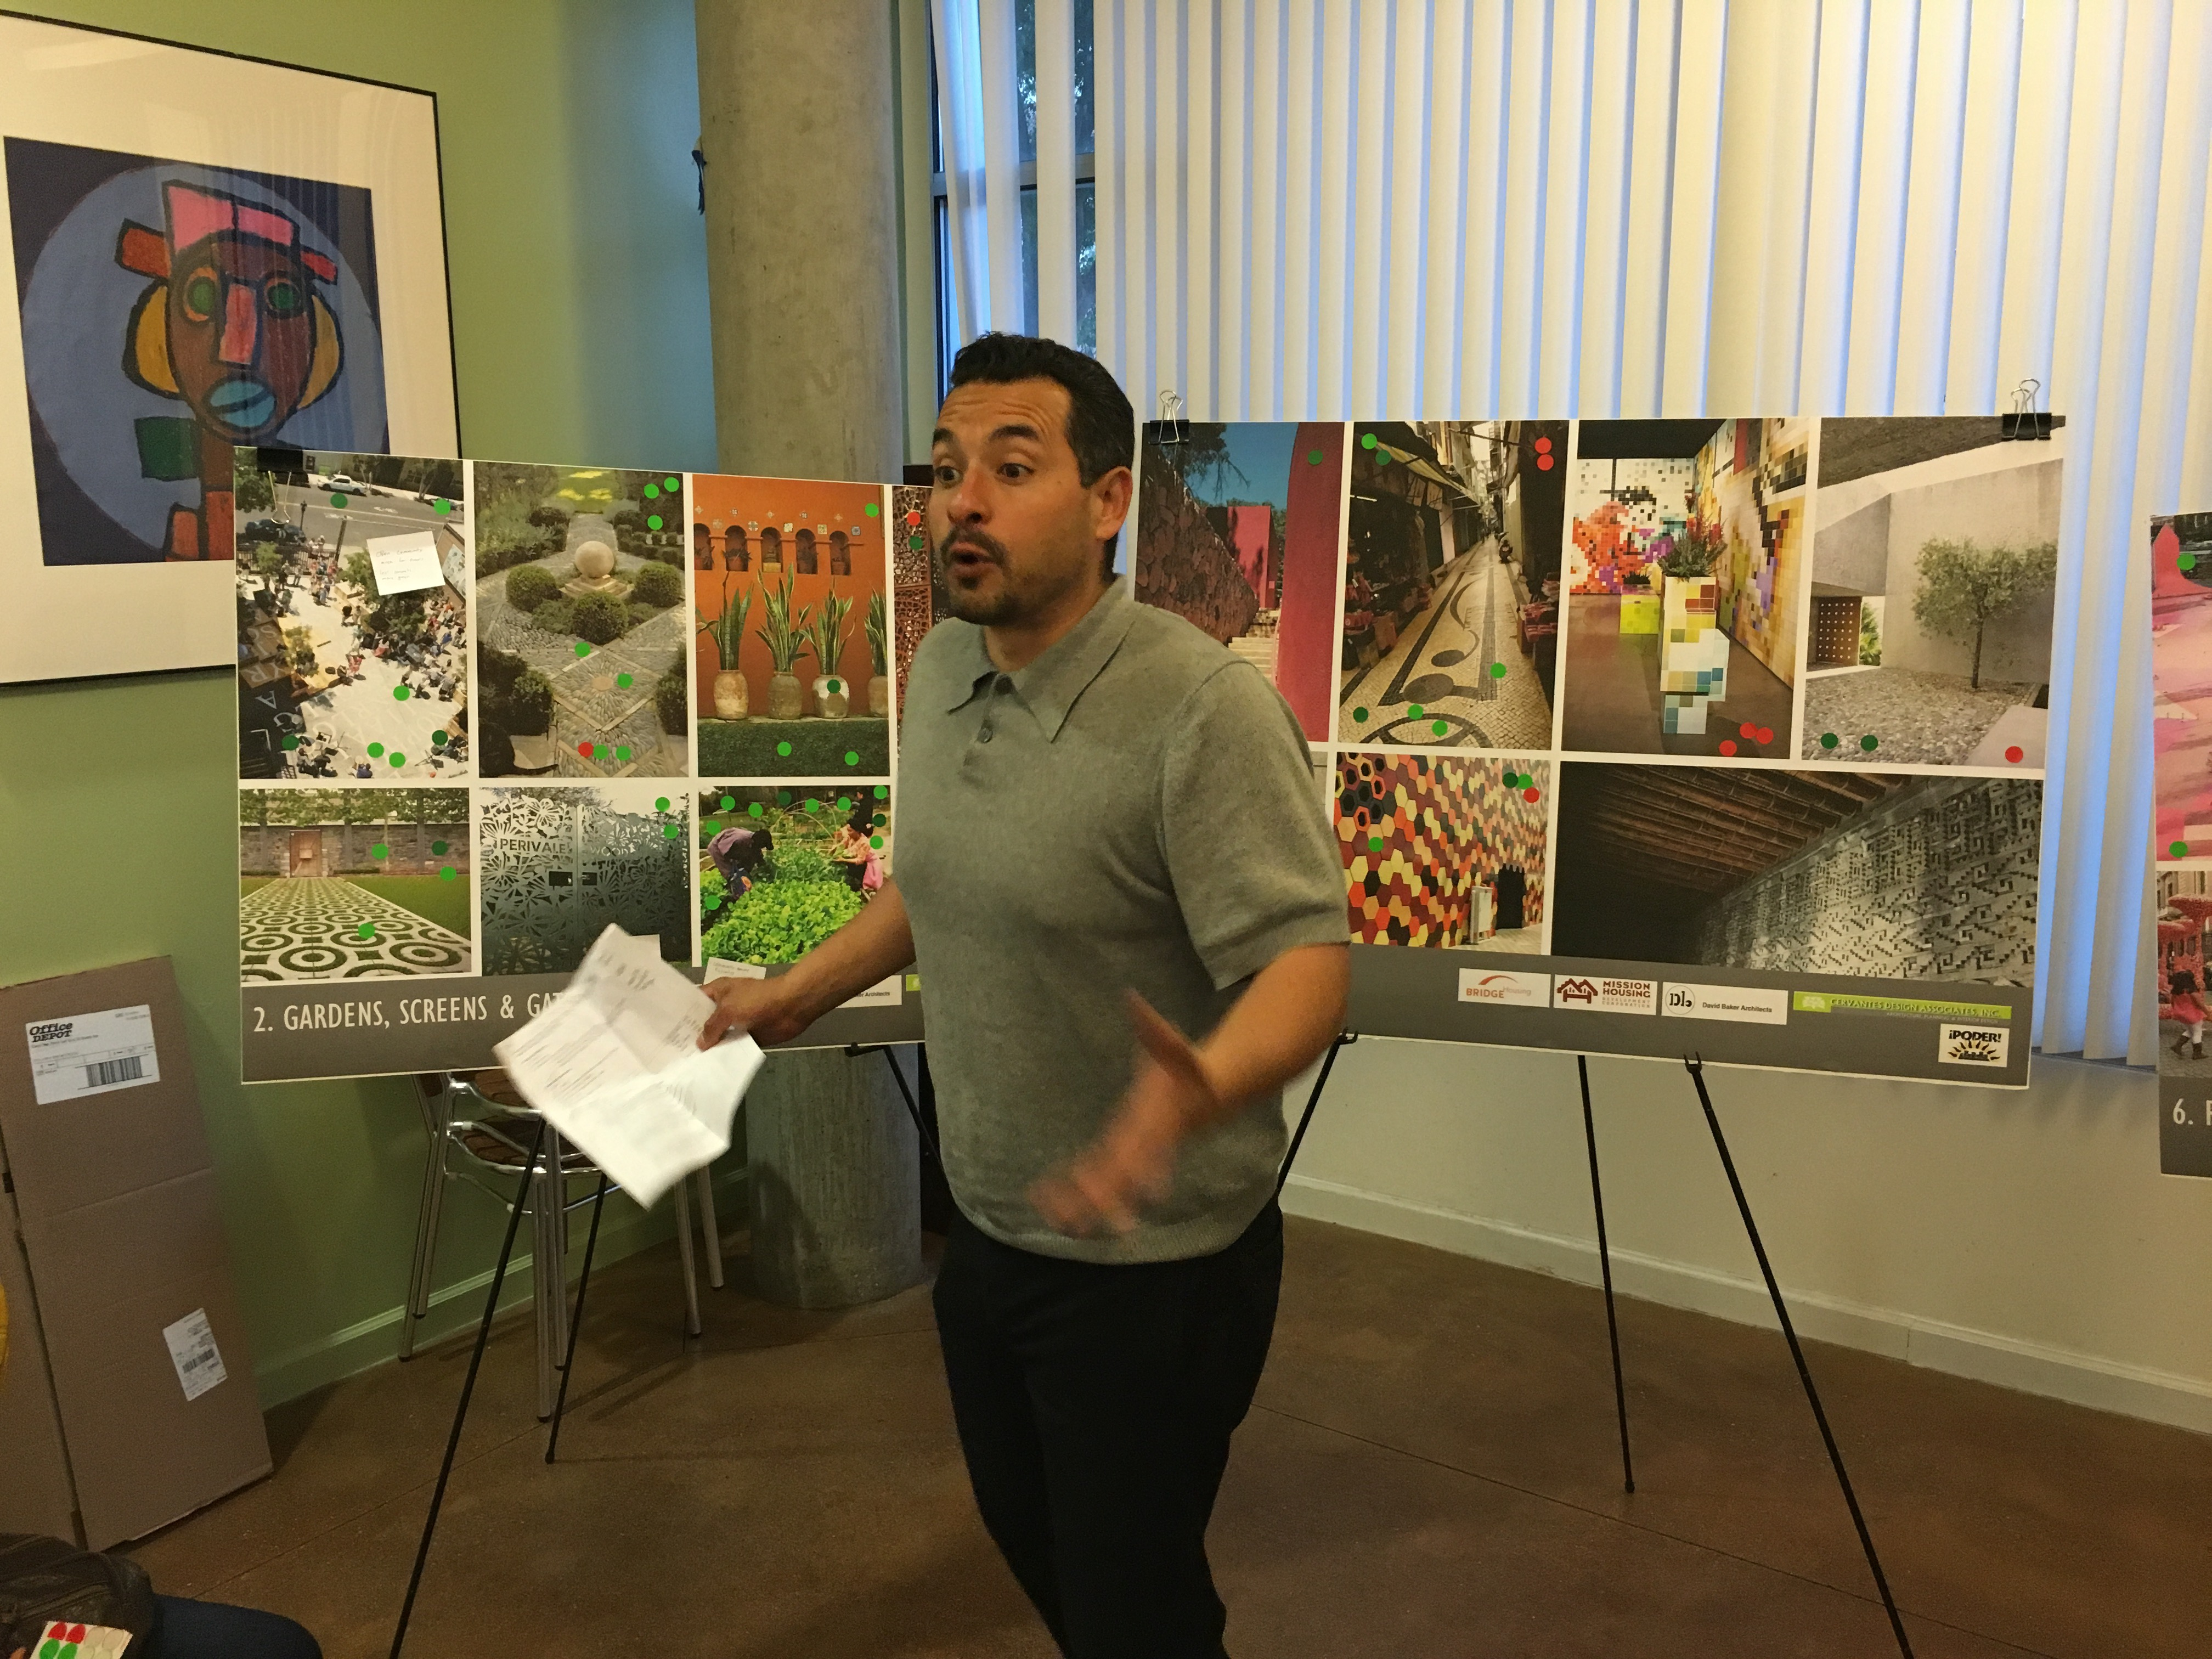 Sewage Plan for SF Mission Housing Questioned